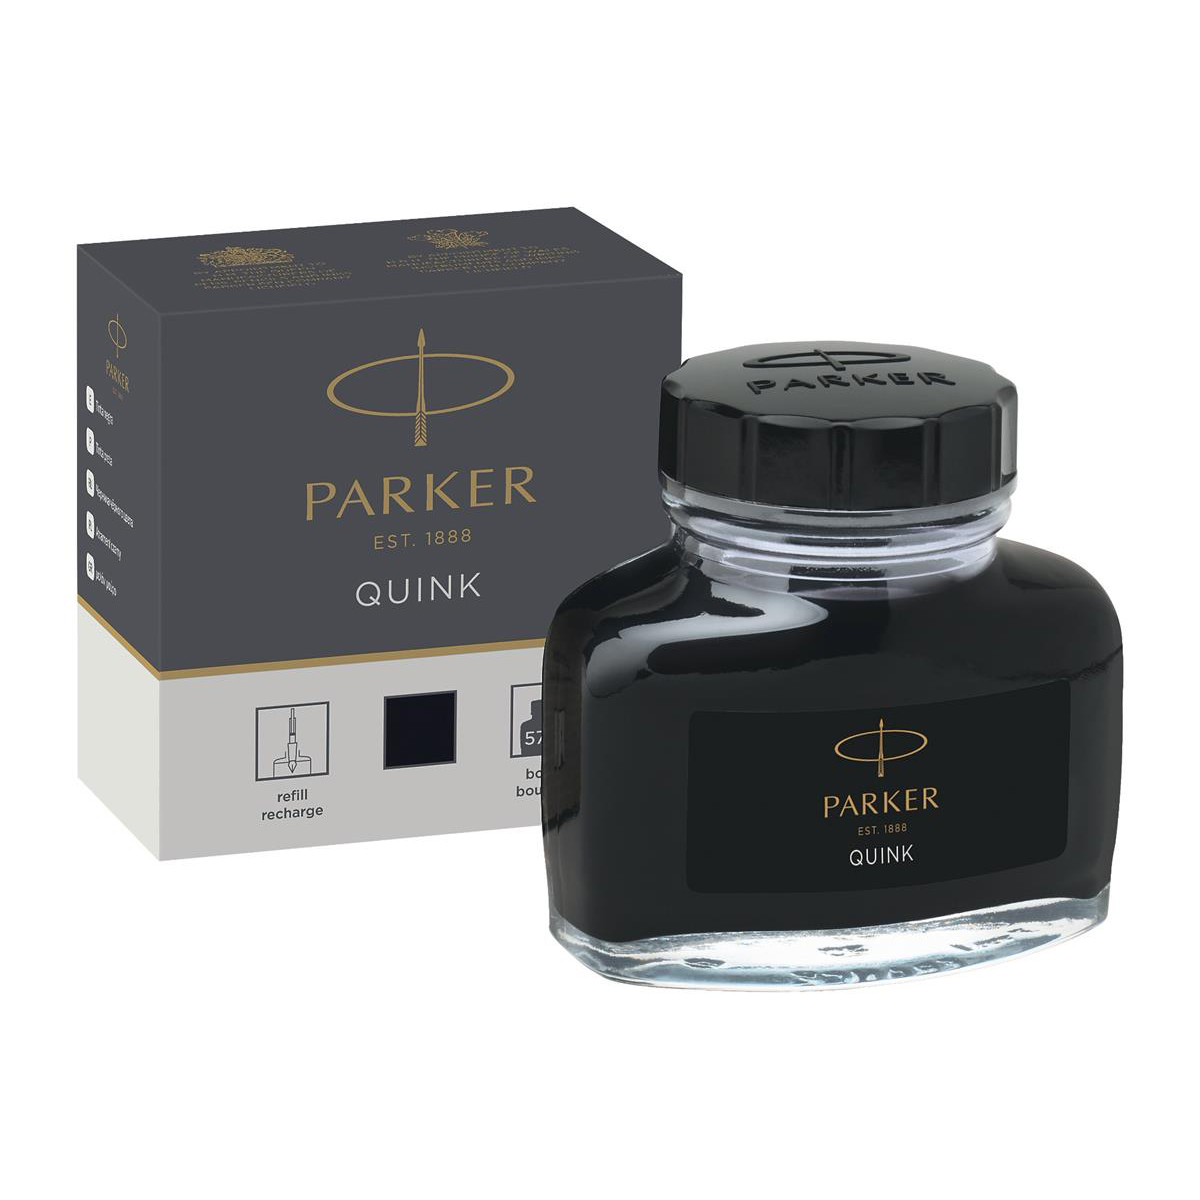 Parker Bottle Ink BLK 57ml 1950375